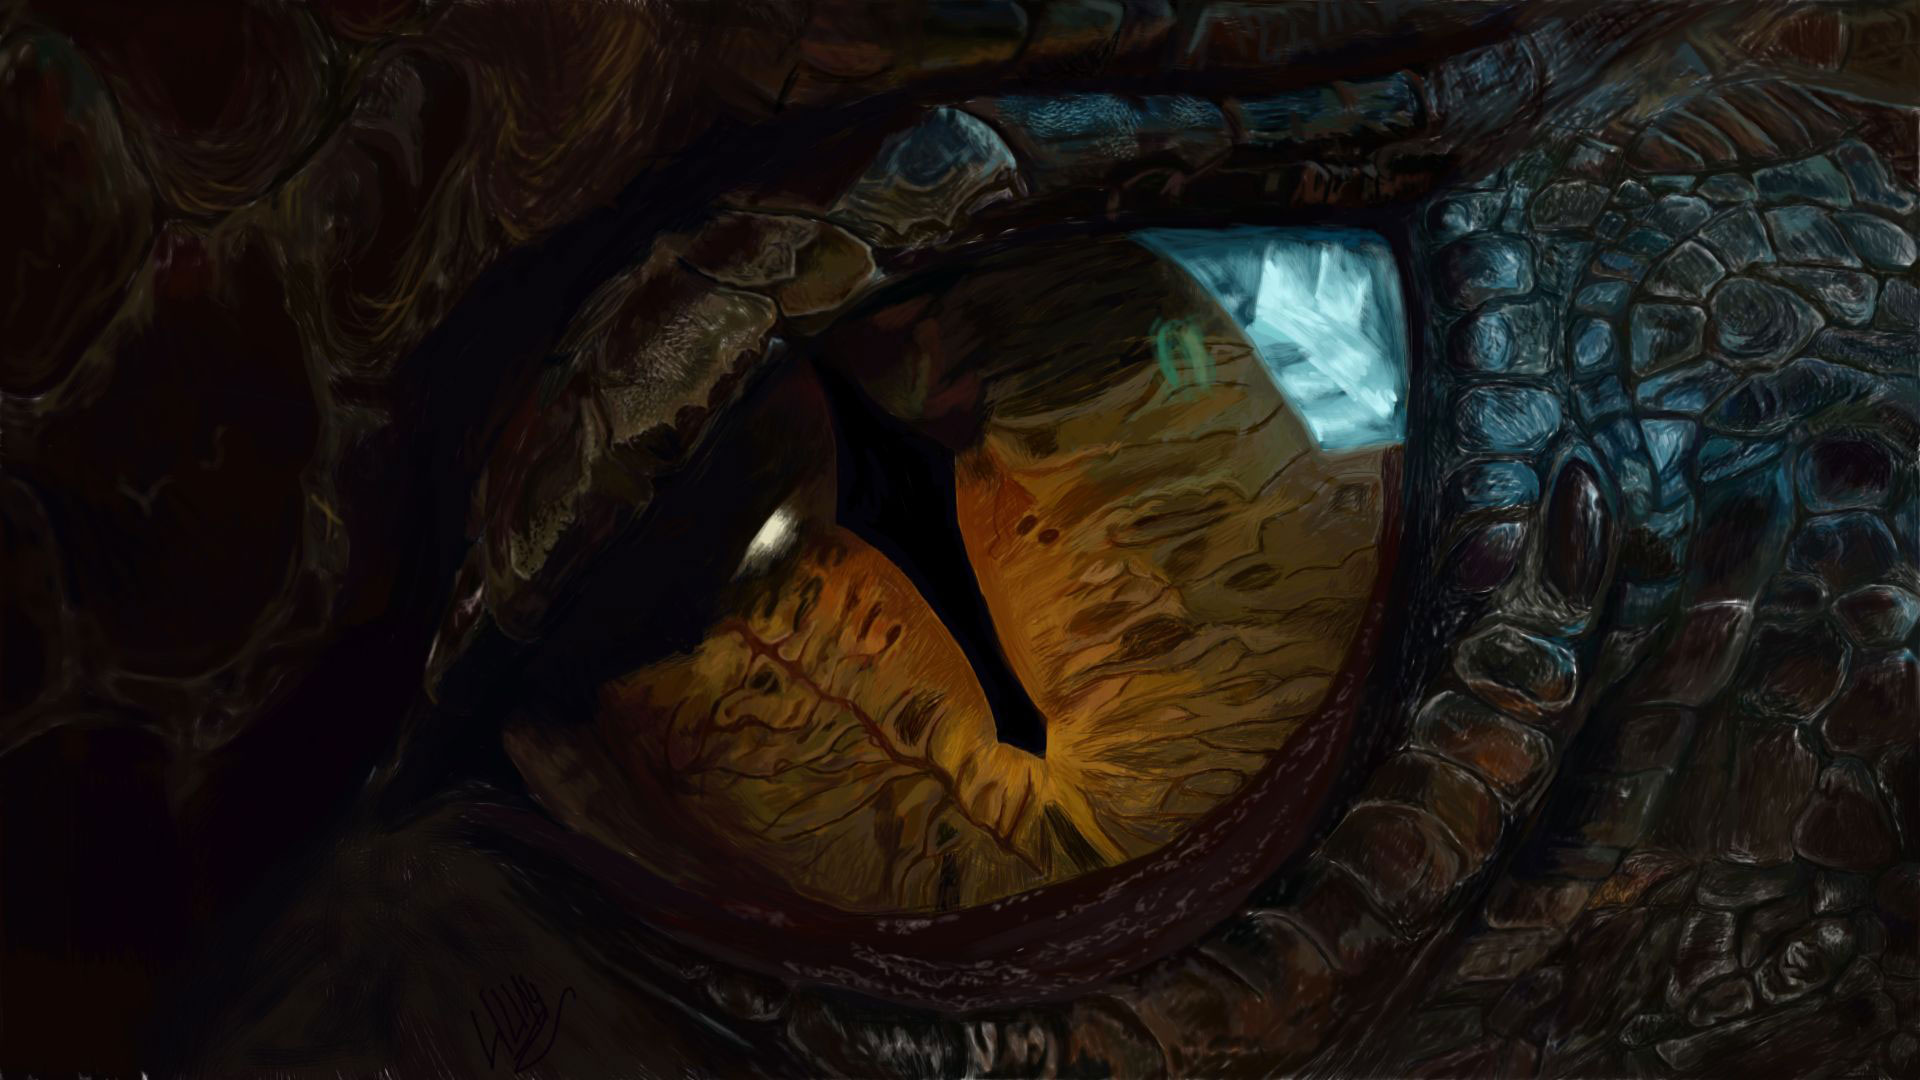 Hobbit 3 Eye Smaug Wallpaper HD 1920 x 1080 1920x1080